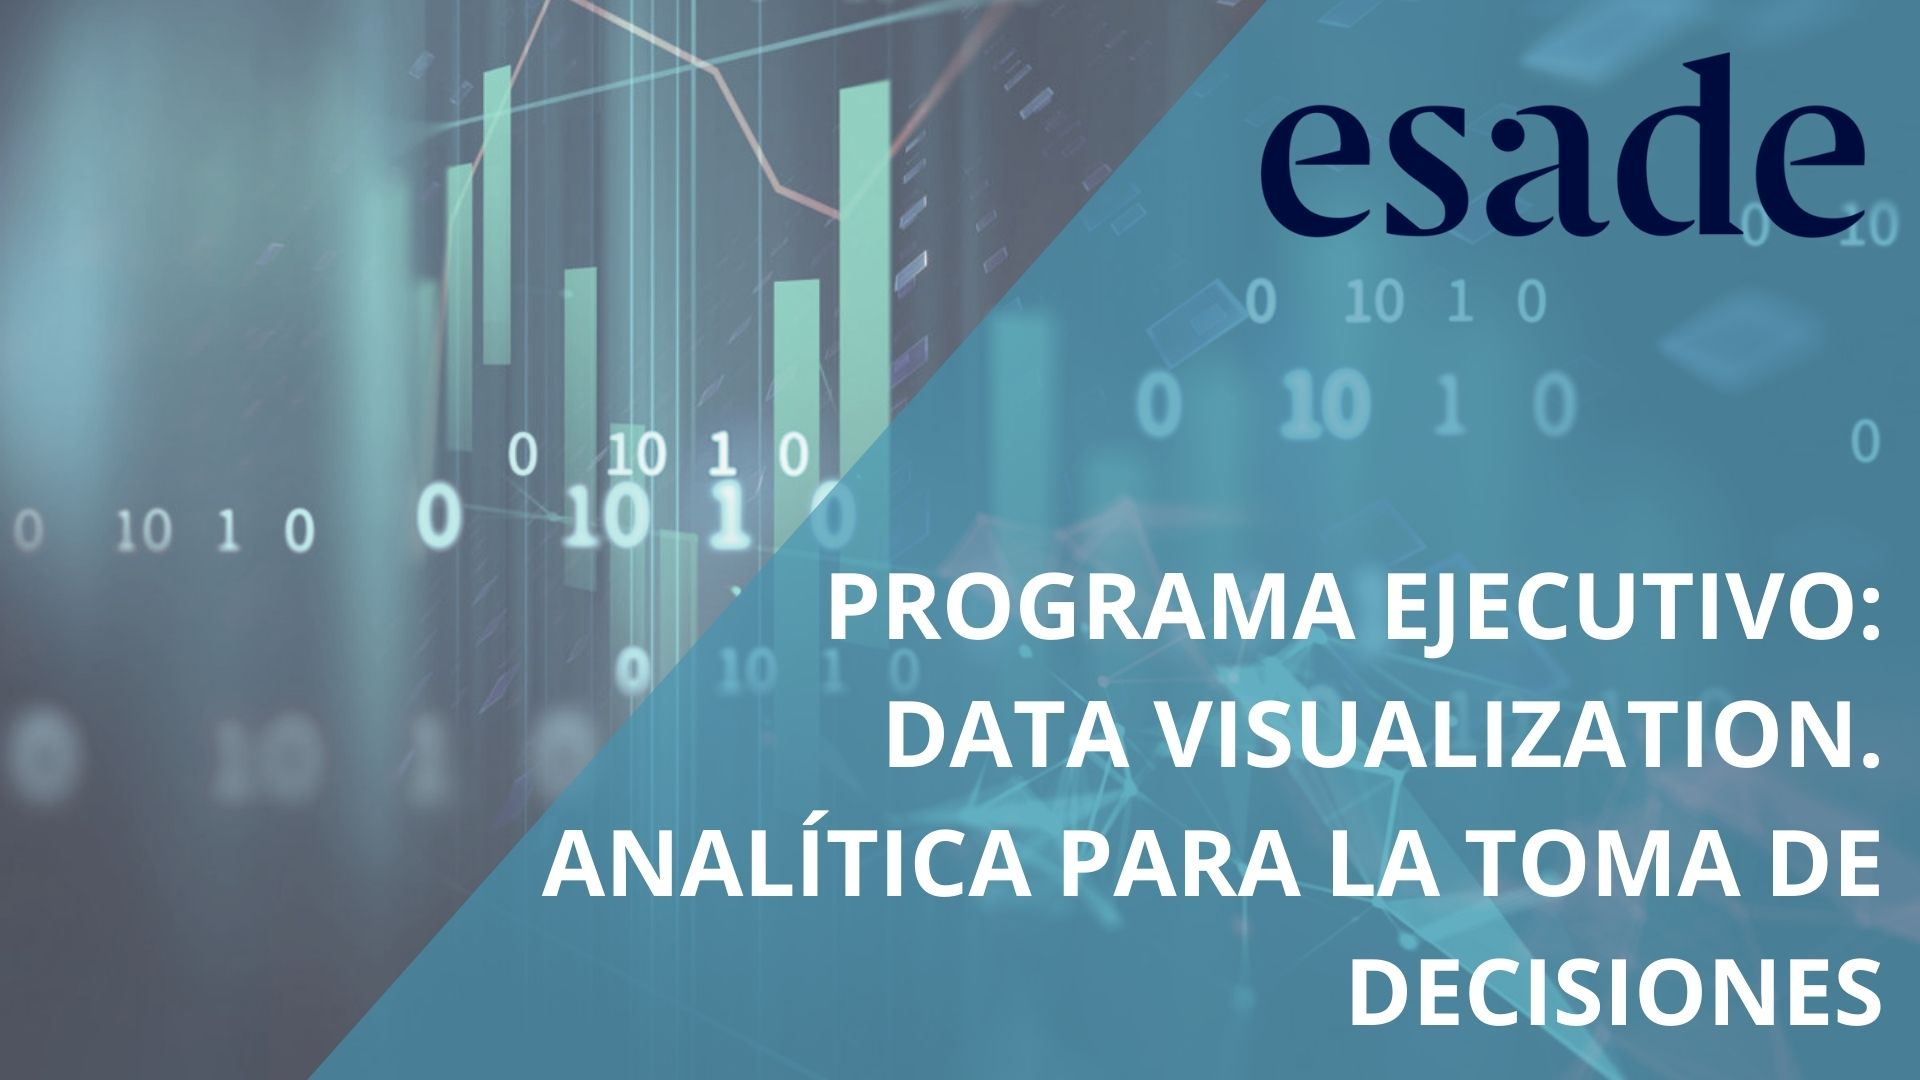 DATA VISUALIZATION ESADE - Cámara Comercio Murcia